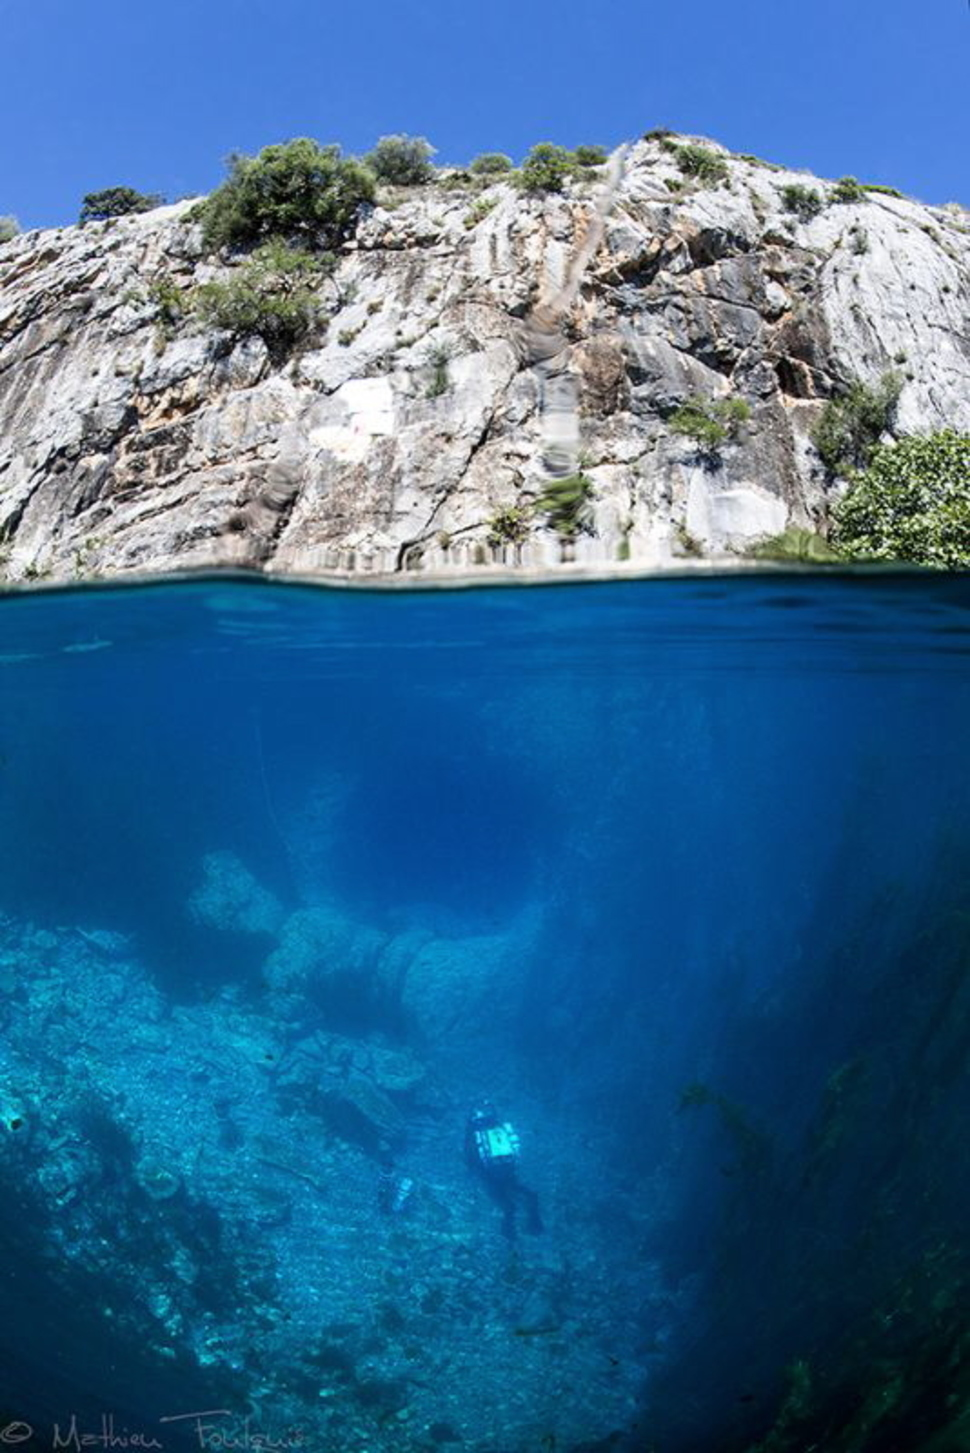 AD-Incredible-Photos-That-Reveal-A-Glimpse-Of-What-Lies-Beneath-The-Waters-Surface-07